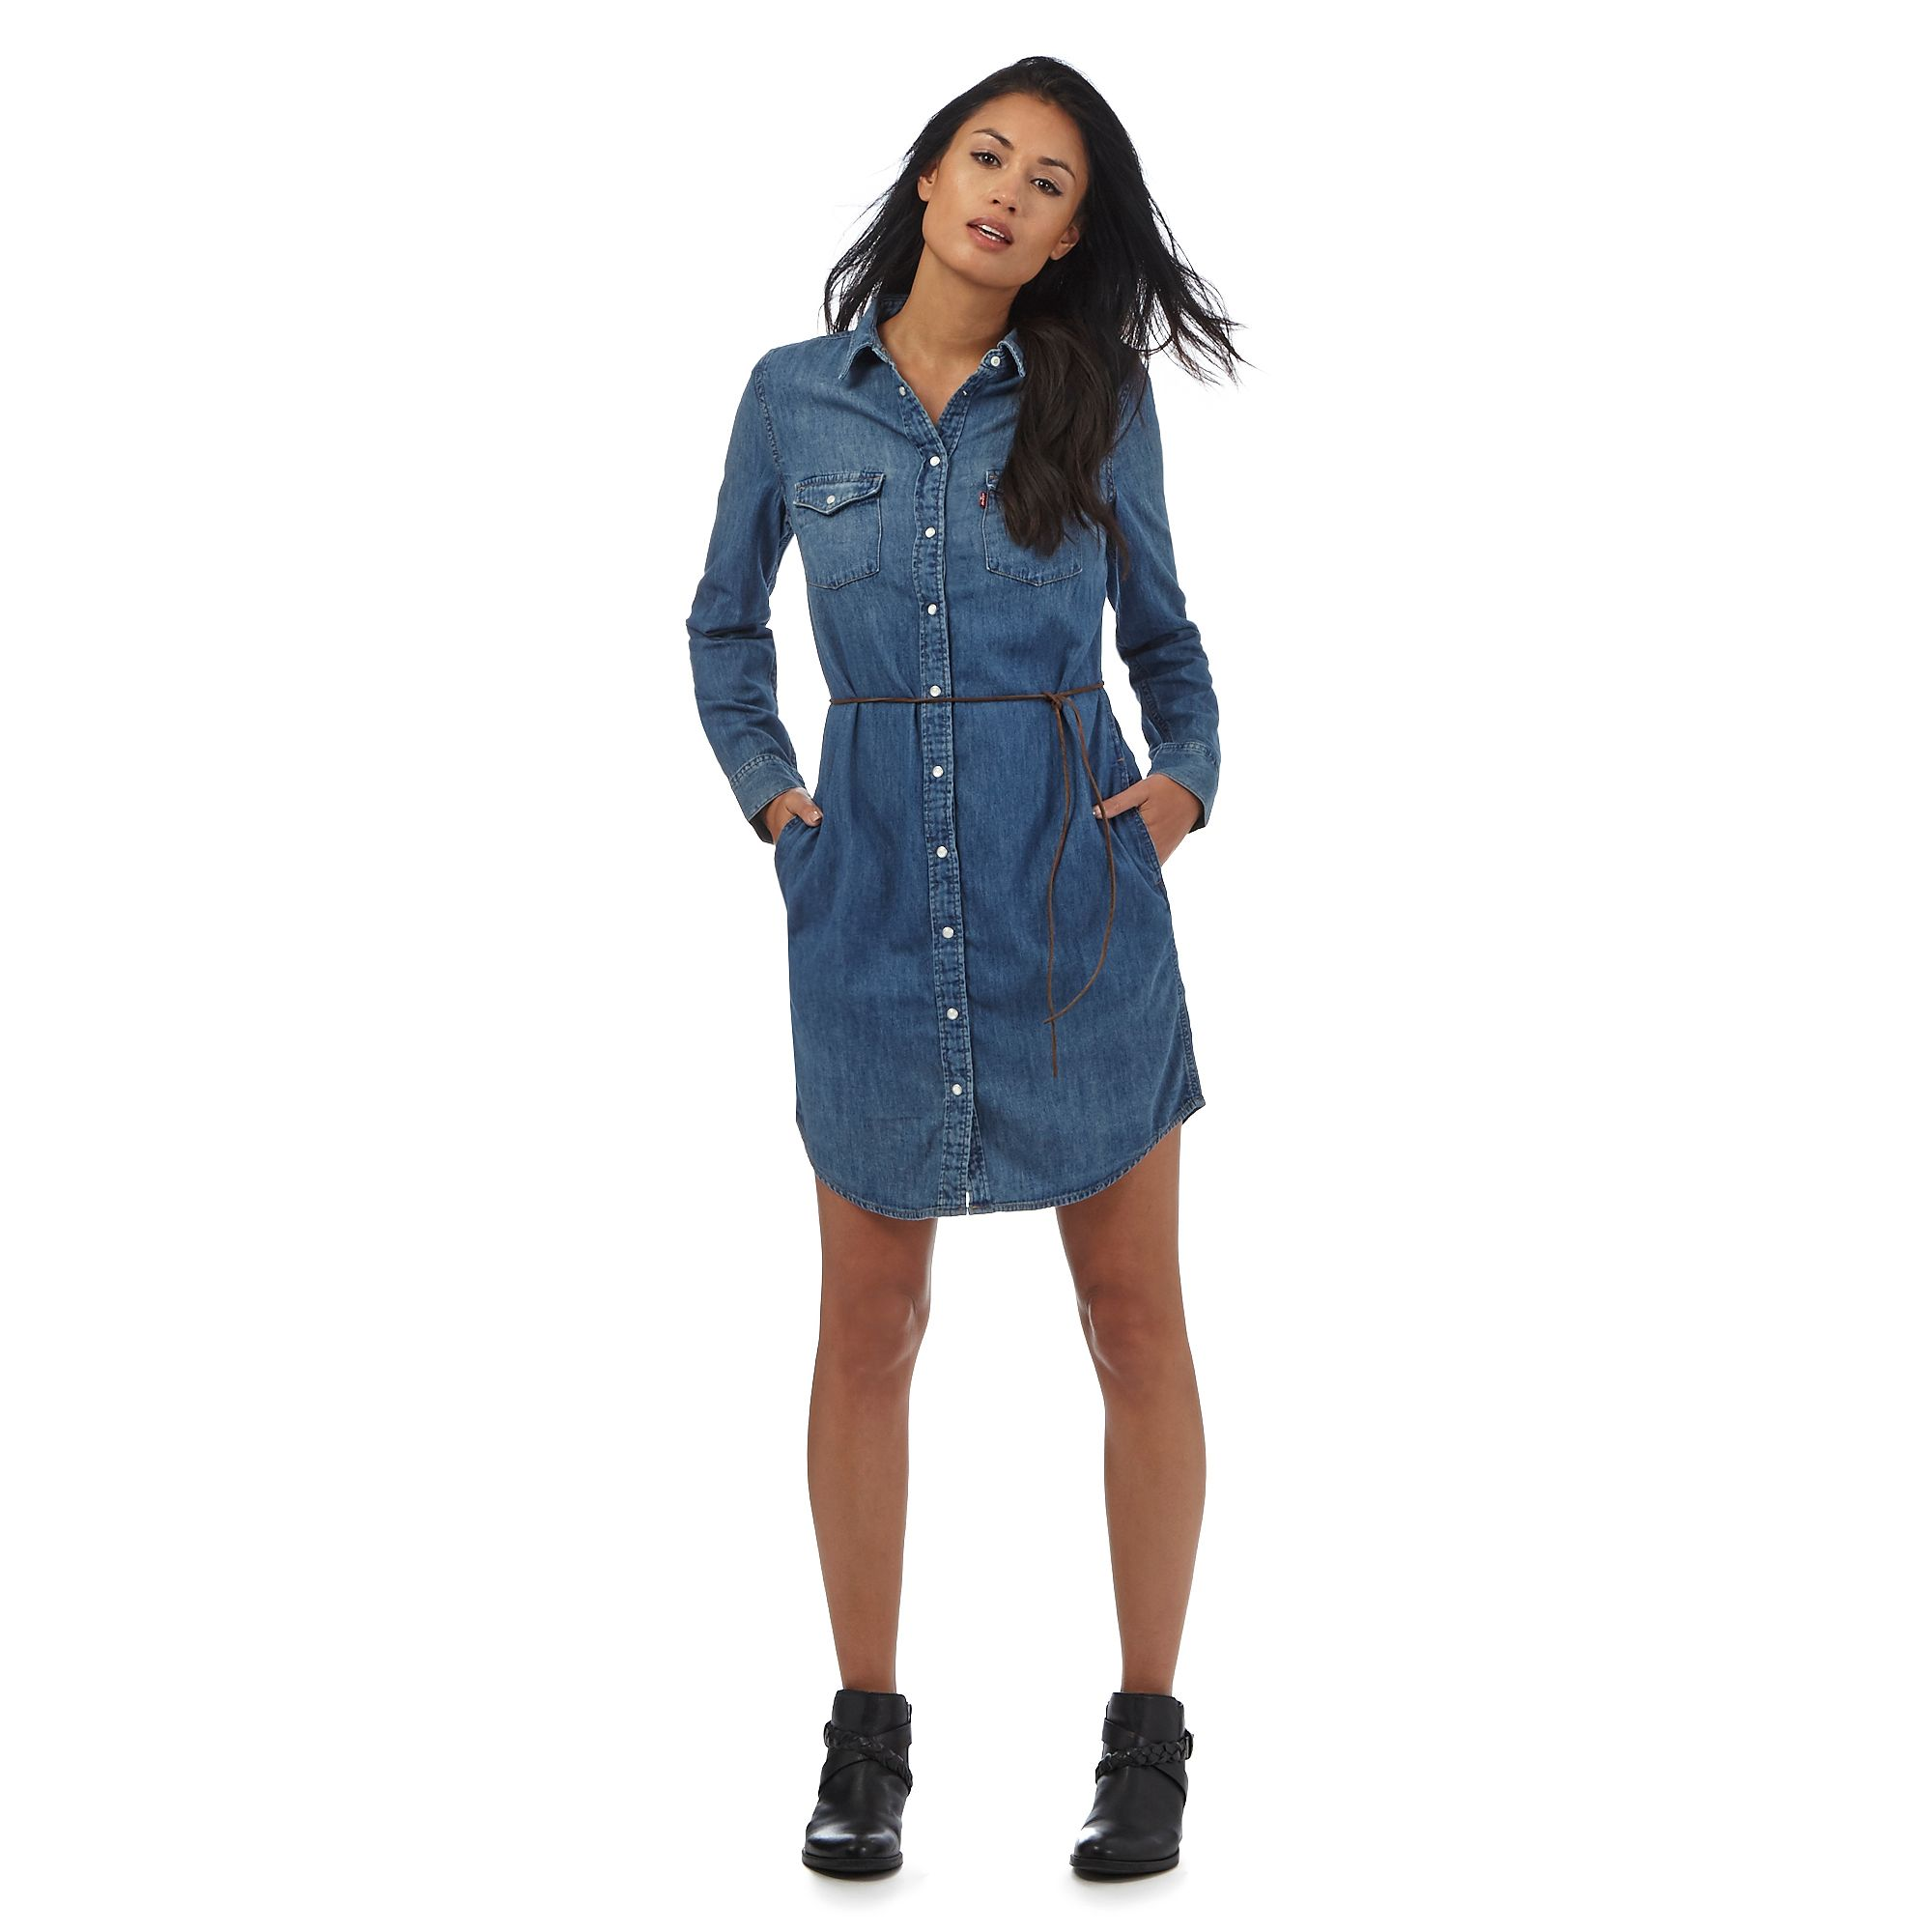 Model The Highstreet Giant Asos Has Good Form When It Comes To Inclusive Clothing, With Its Curve Range For Women, As Well As An Impressive Selection  Available In